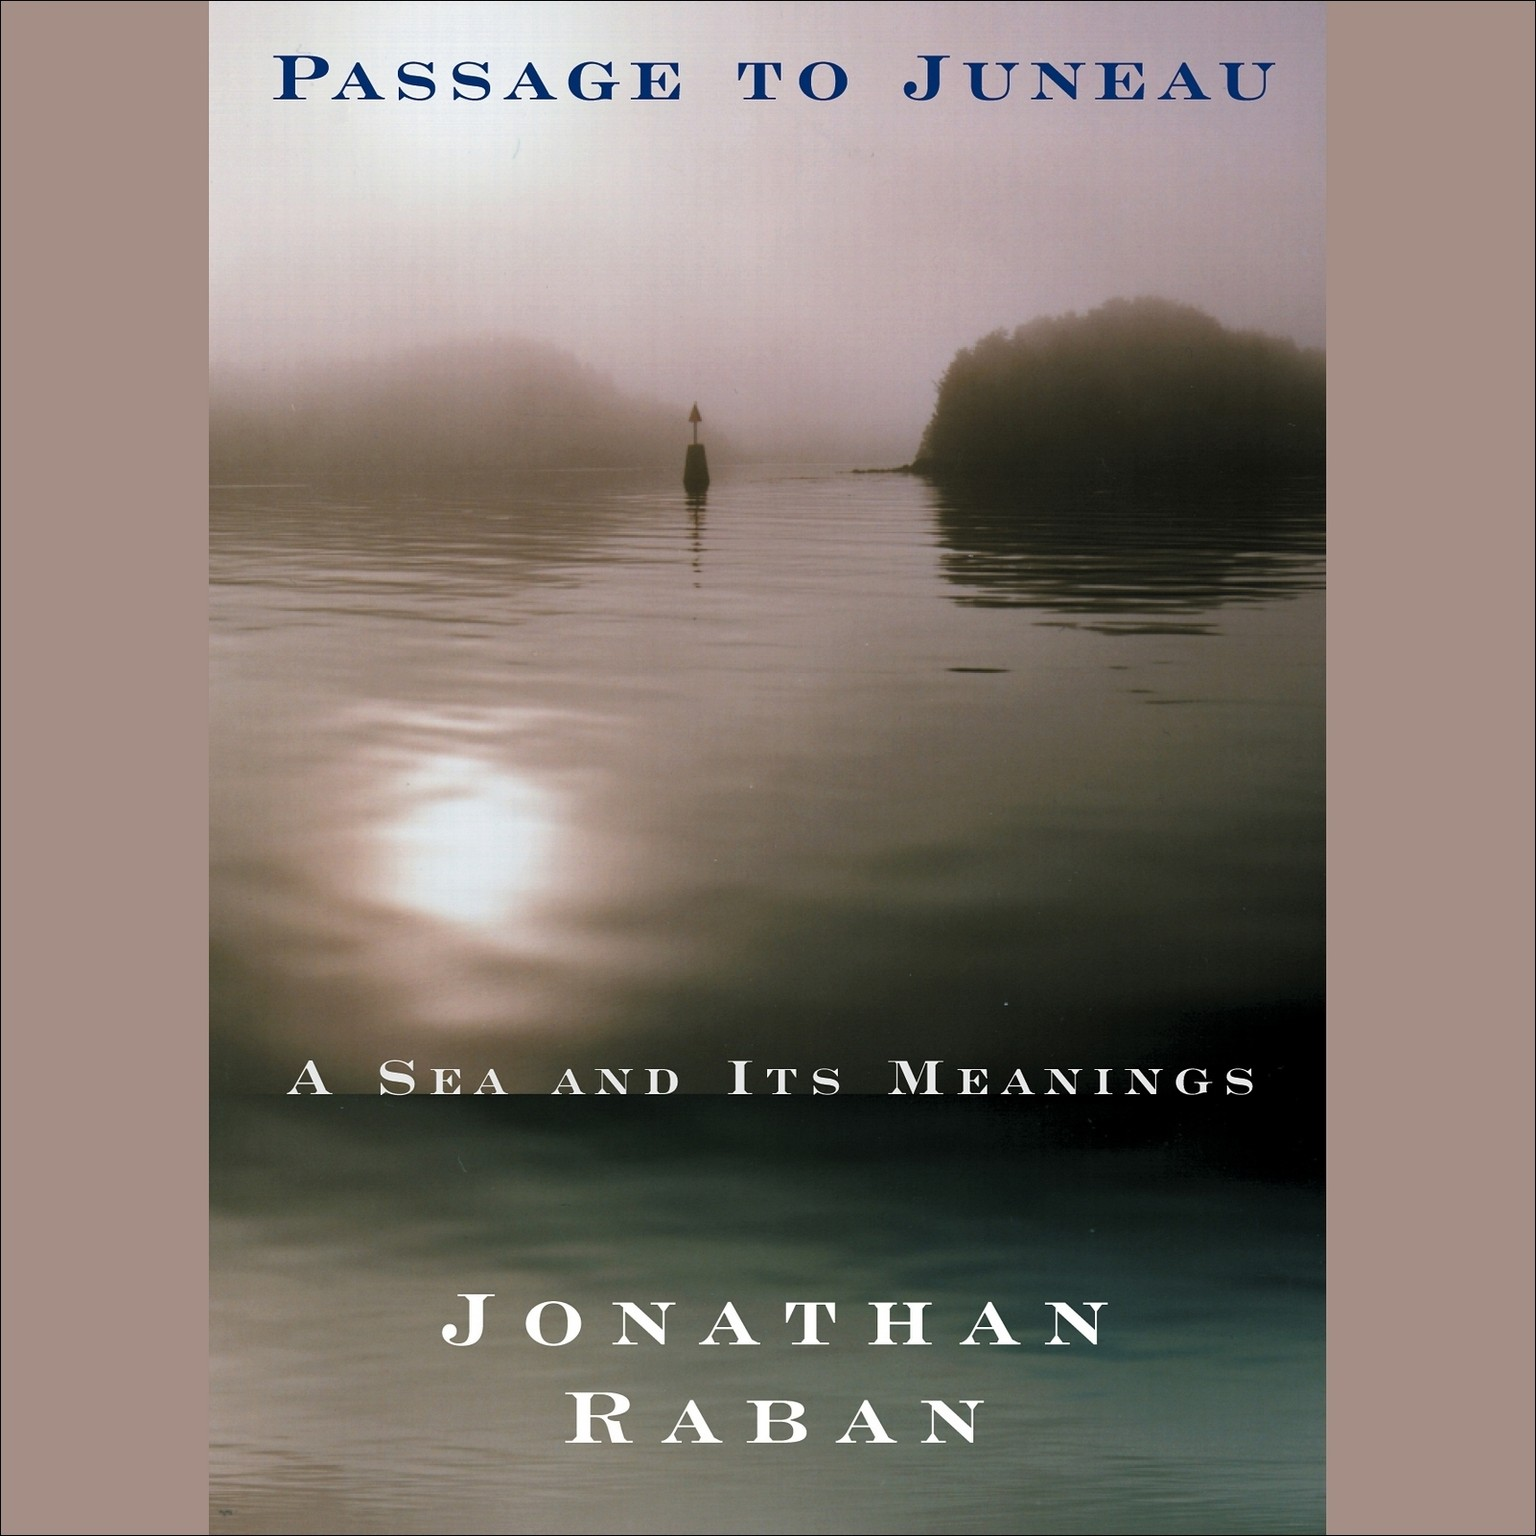 Passage to Juneau (Abridged): A Sea and Its Meanings Audiobook, by Jonathan Raban